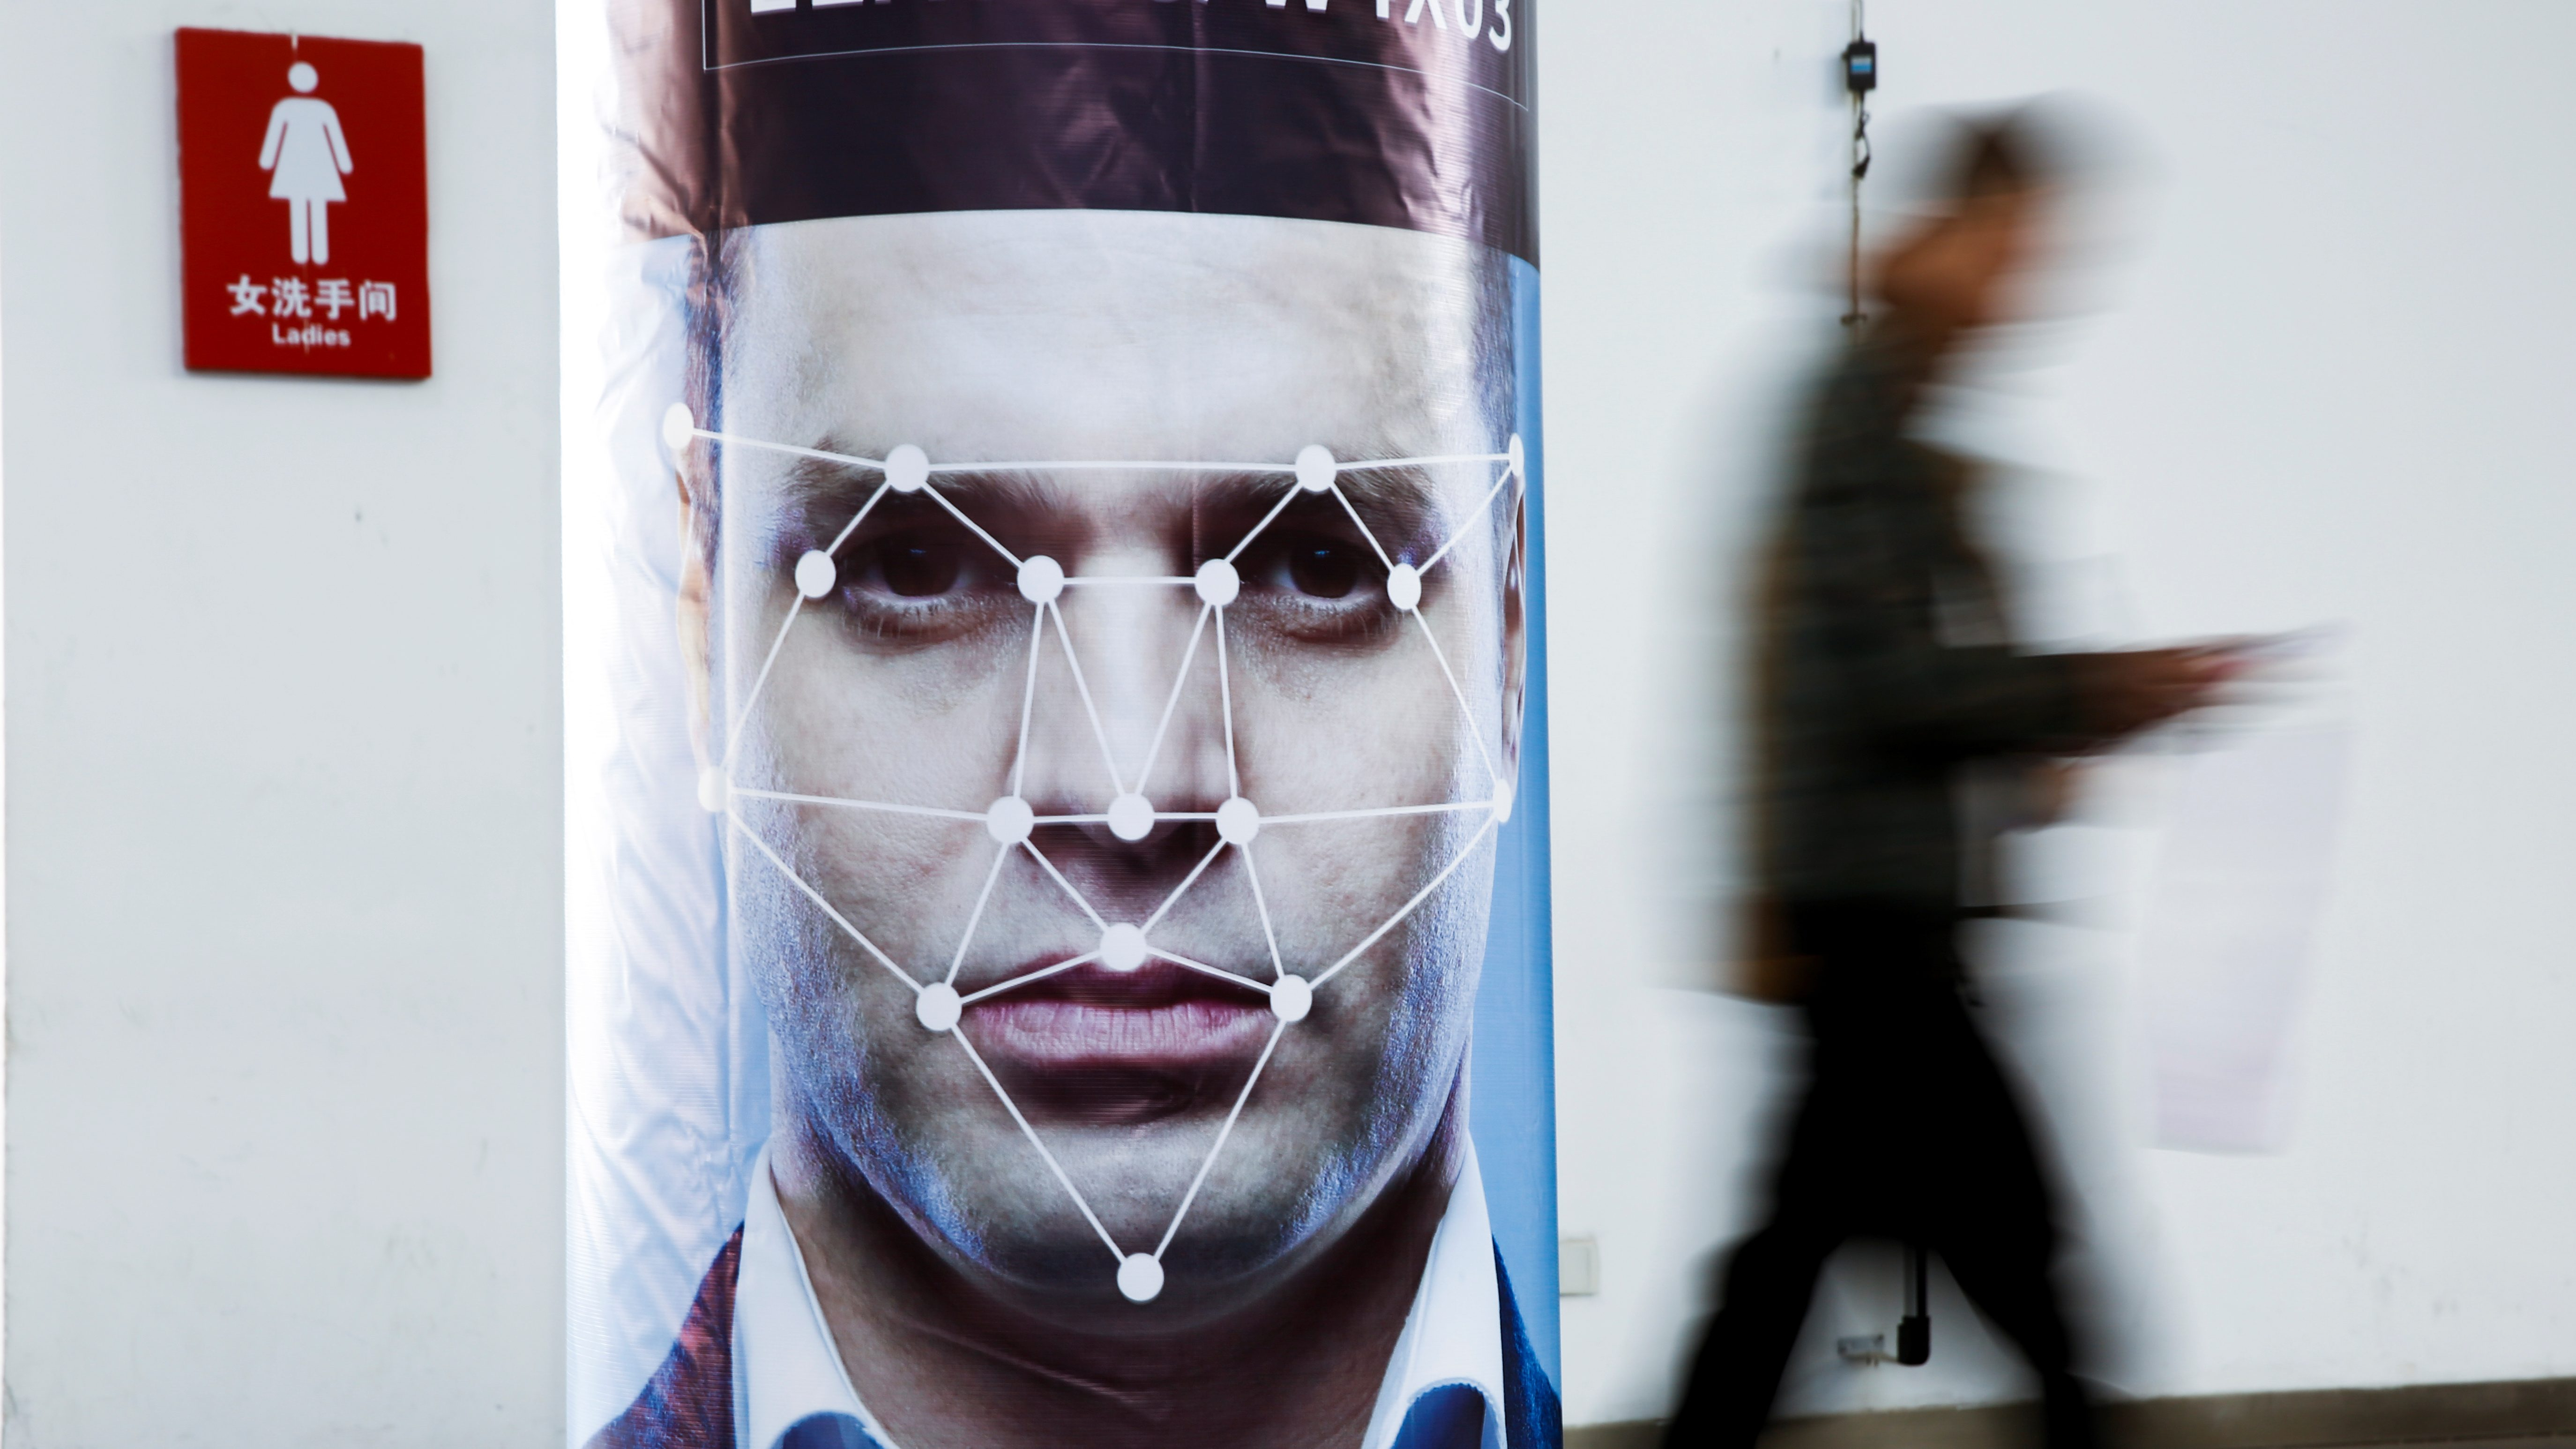 A man walks past a poster simulating facial recognition software